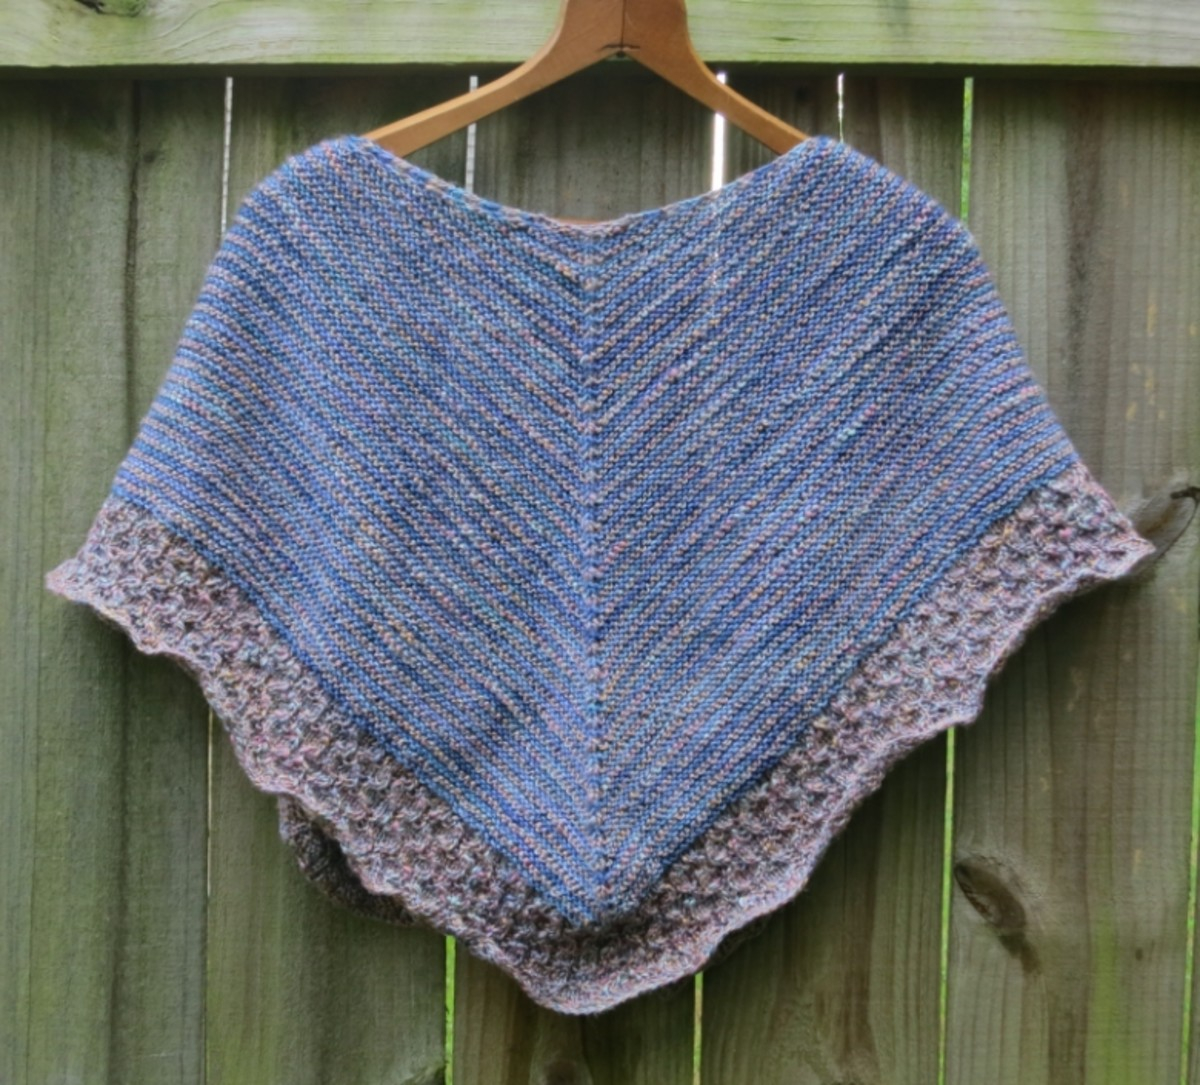 Free Knitting Pattern: Lightweight Textured Shawl HubPages